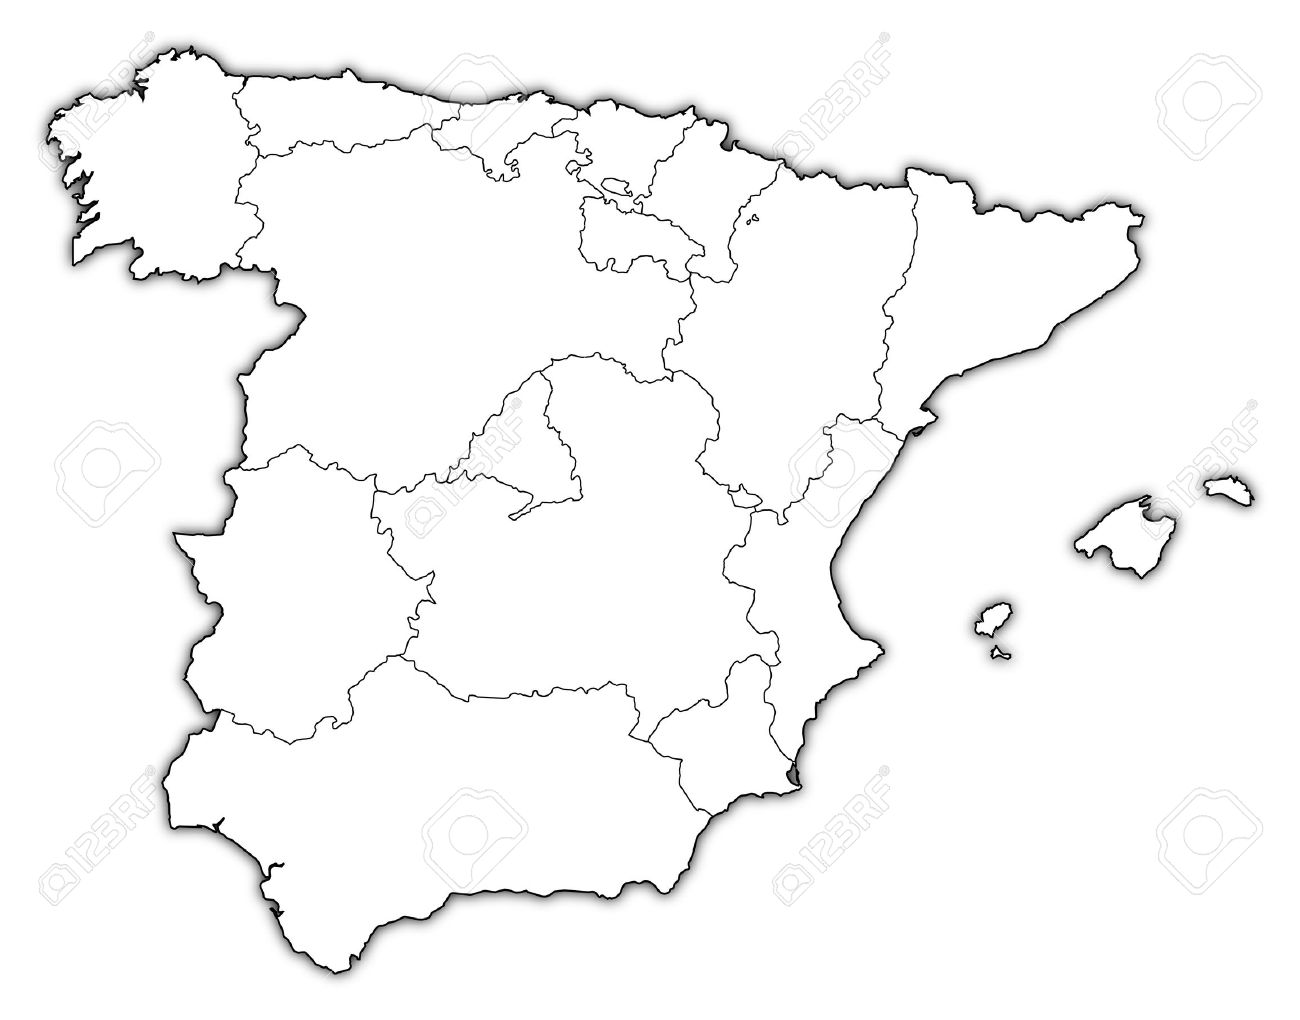 Political map of Spain with the several regions. - 11566158